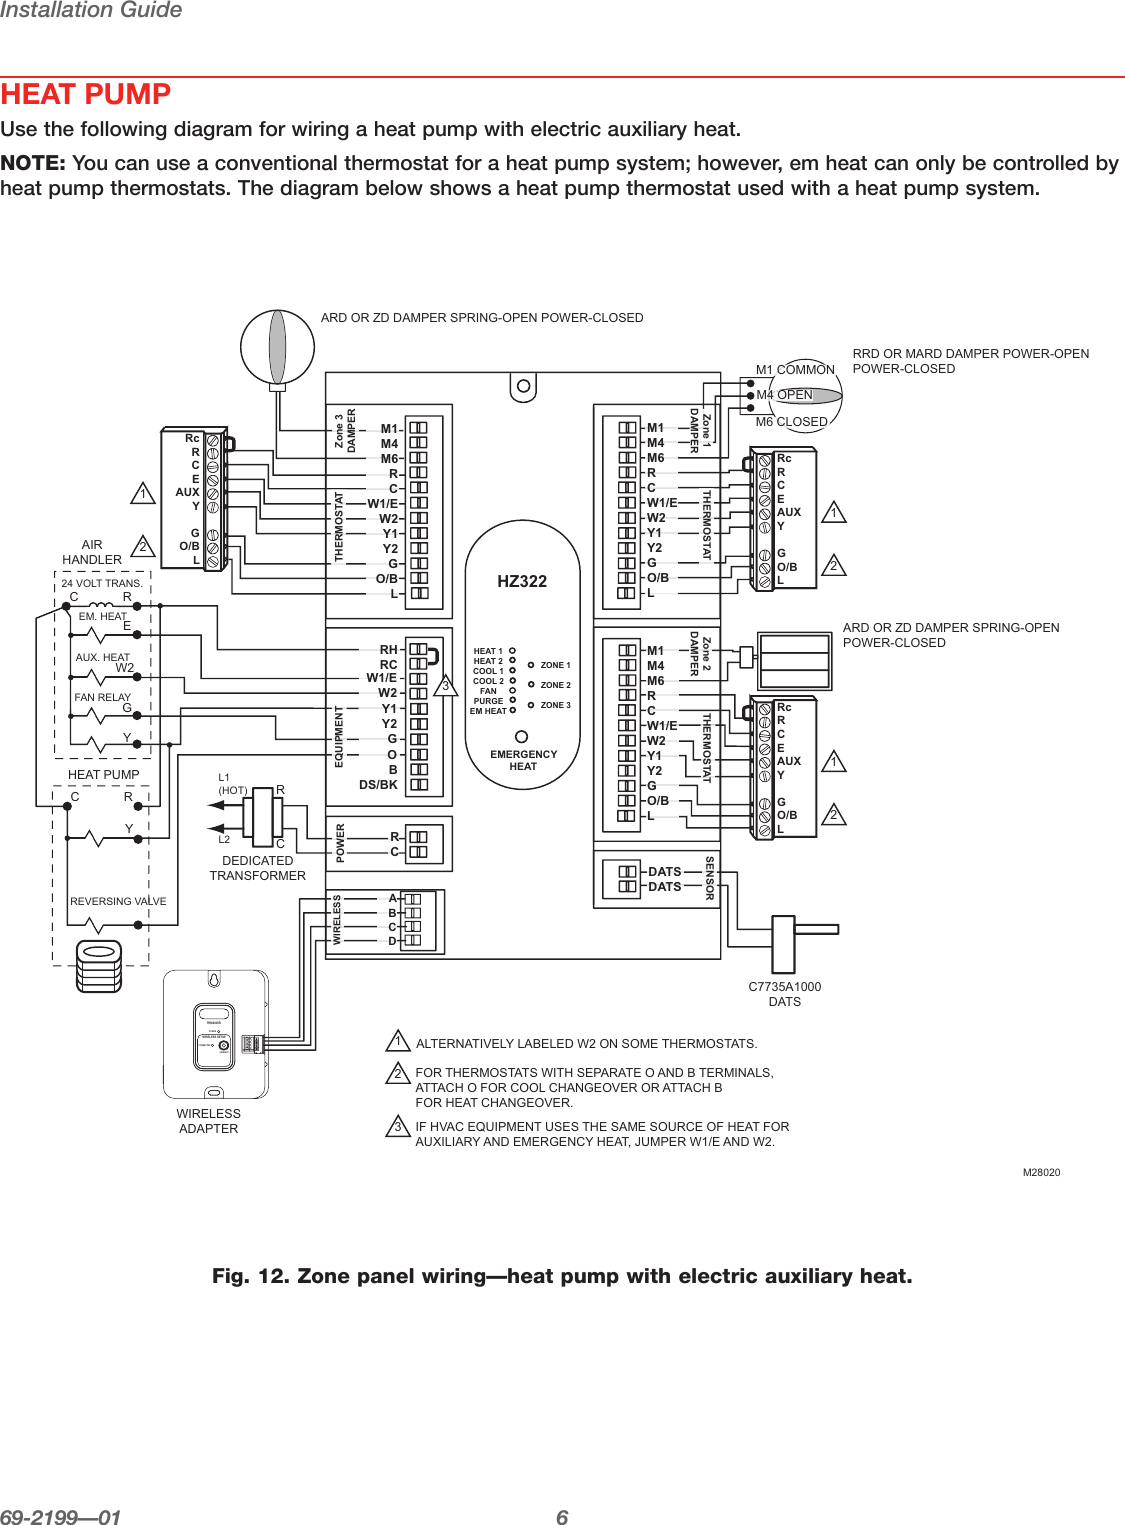 Old White Rodgers Thermostat Manual Wiring Diagram 1f80 361 1f86 344 37 6585b Amazon S3 Programmable Your New